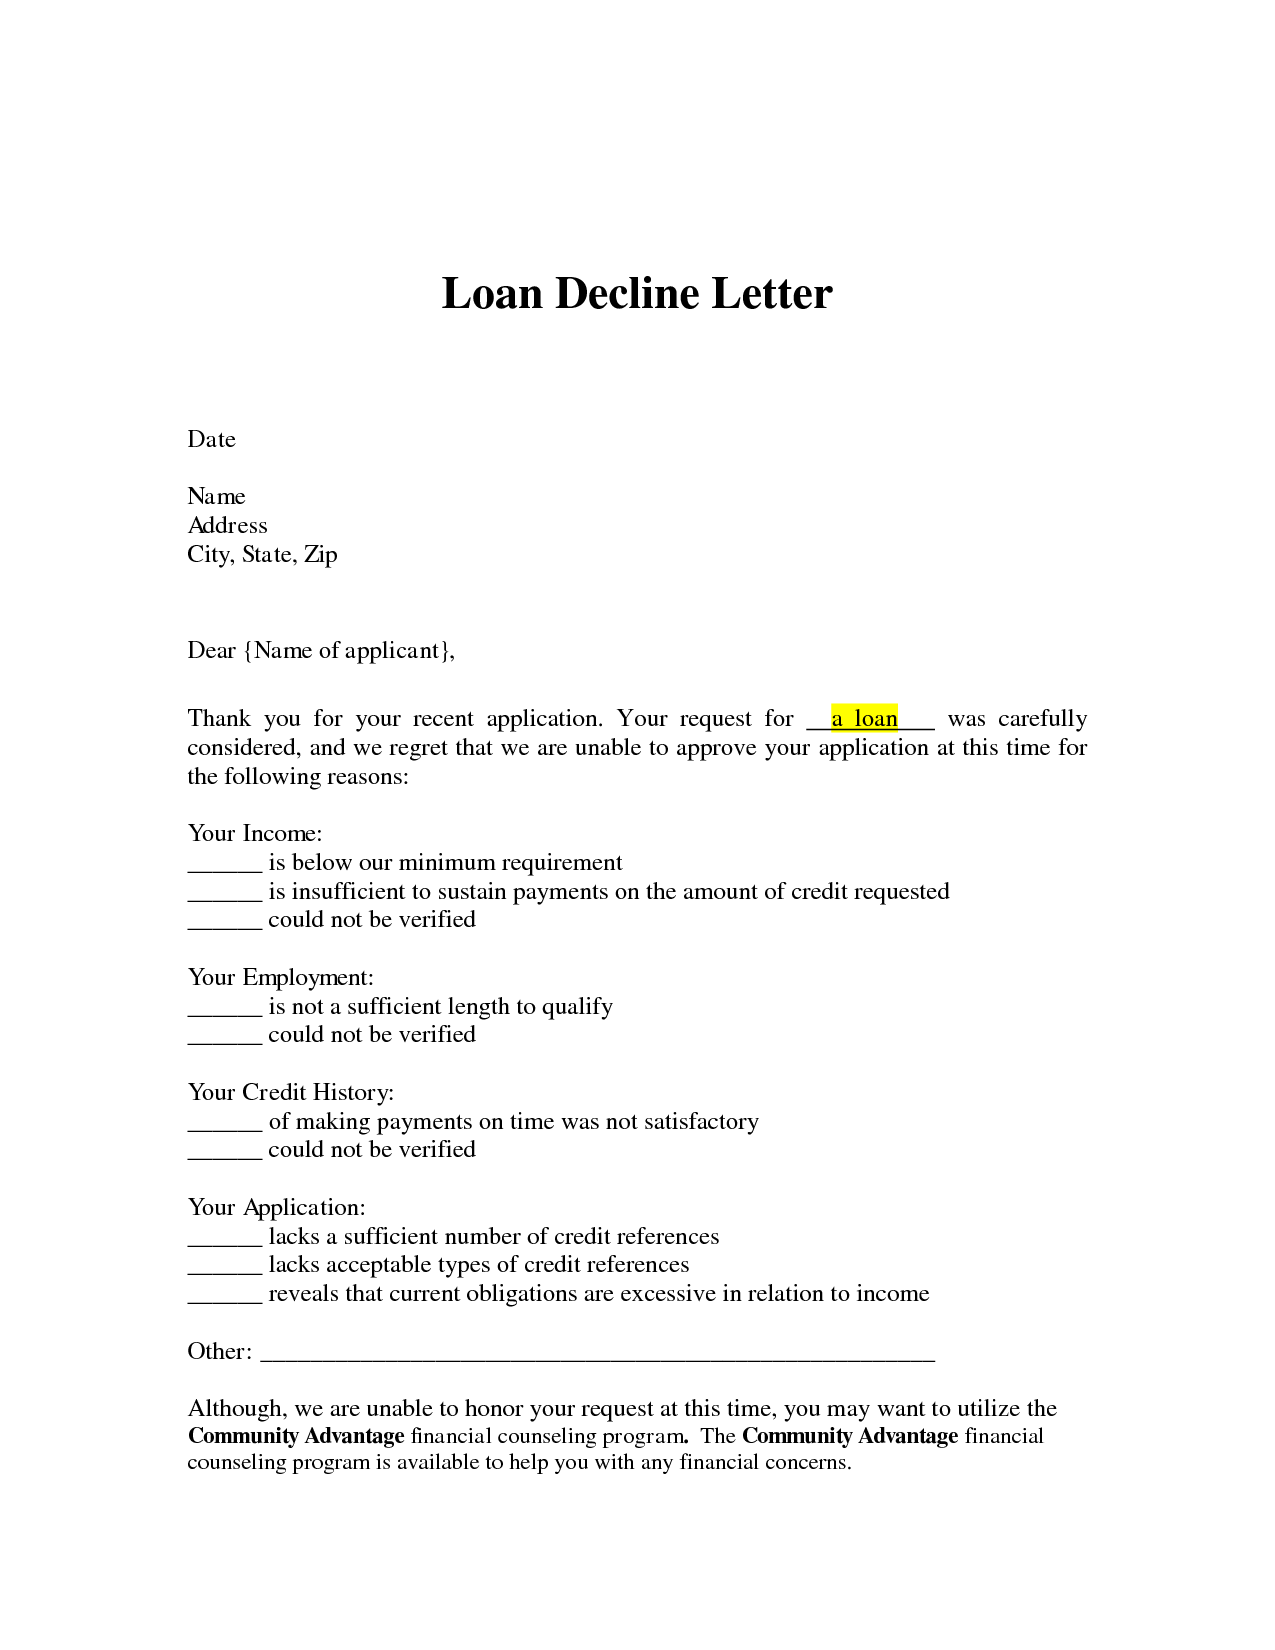 Job Interview Rejection Letter Letter Decline Job Offer Apology